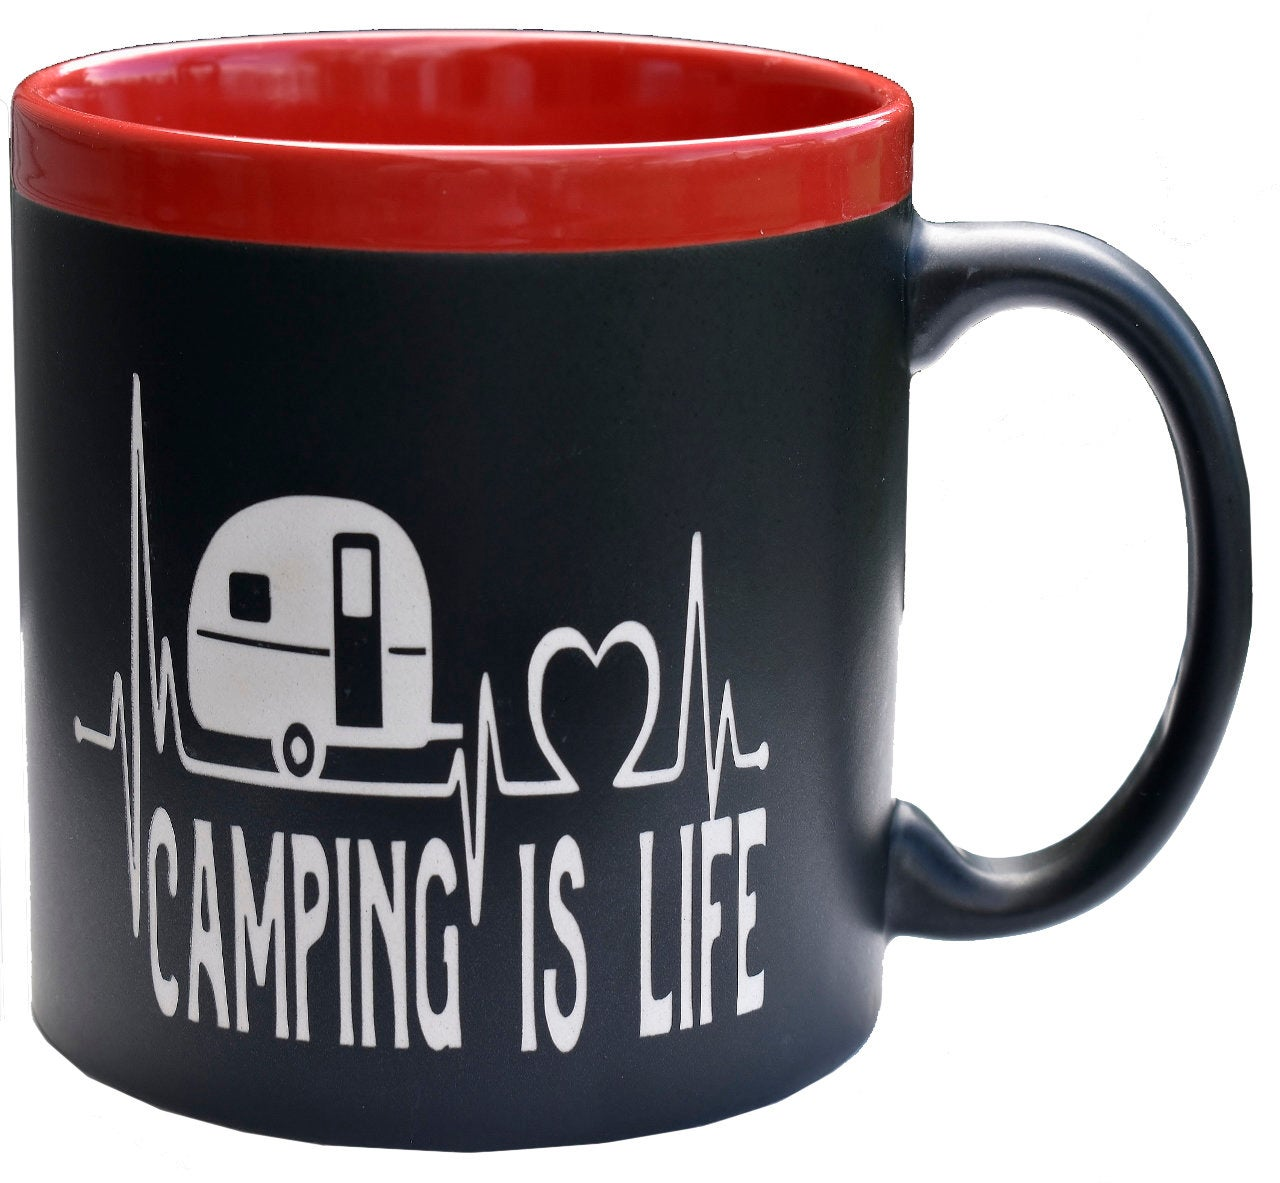 Camping is Life Camper Lifeline 22 oz Coffee Mug Outdoor Lover Gift for Him